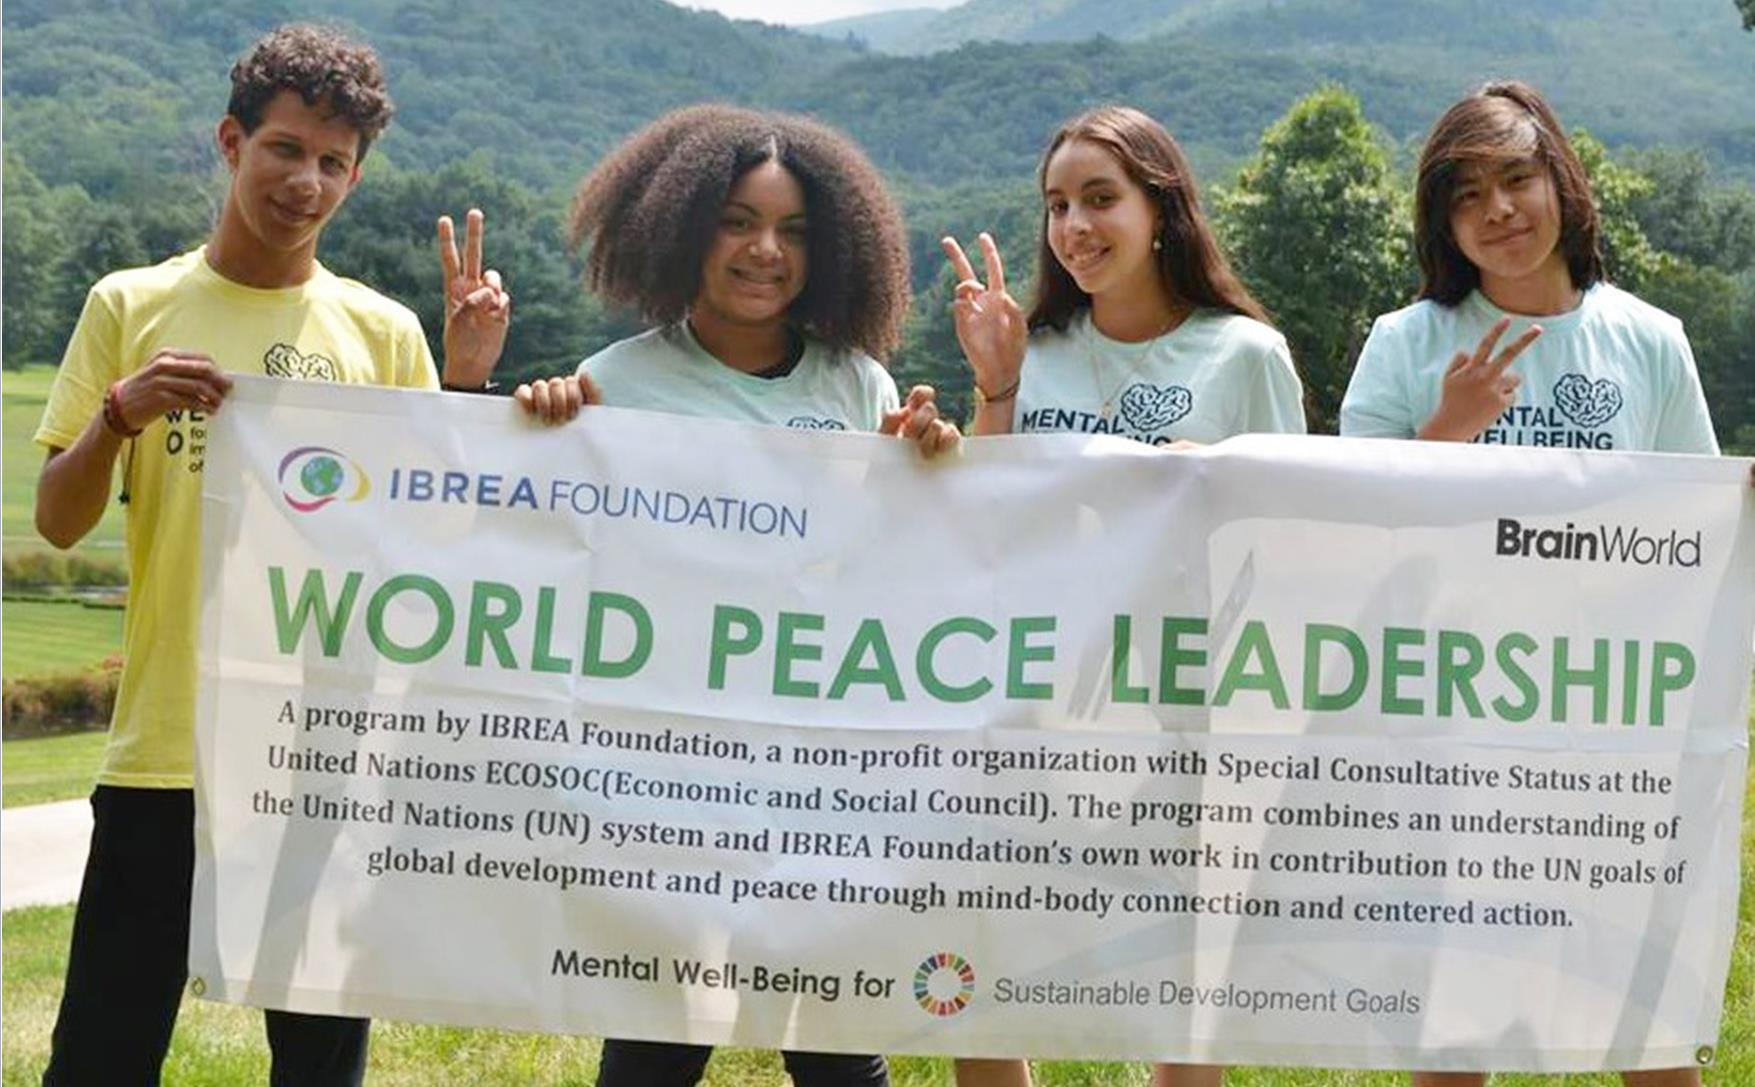 World Peace Leadership Program